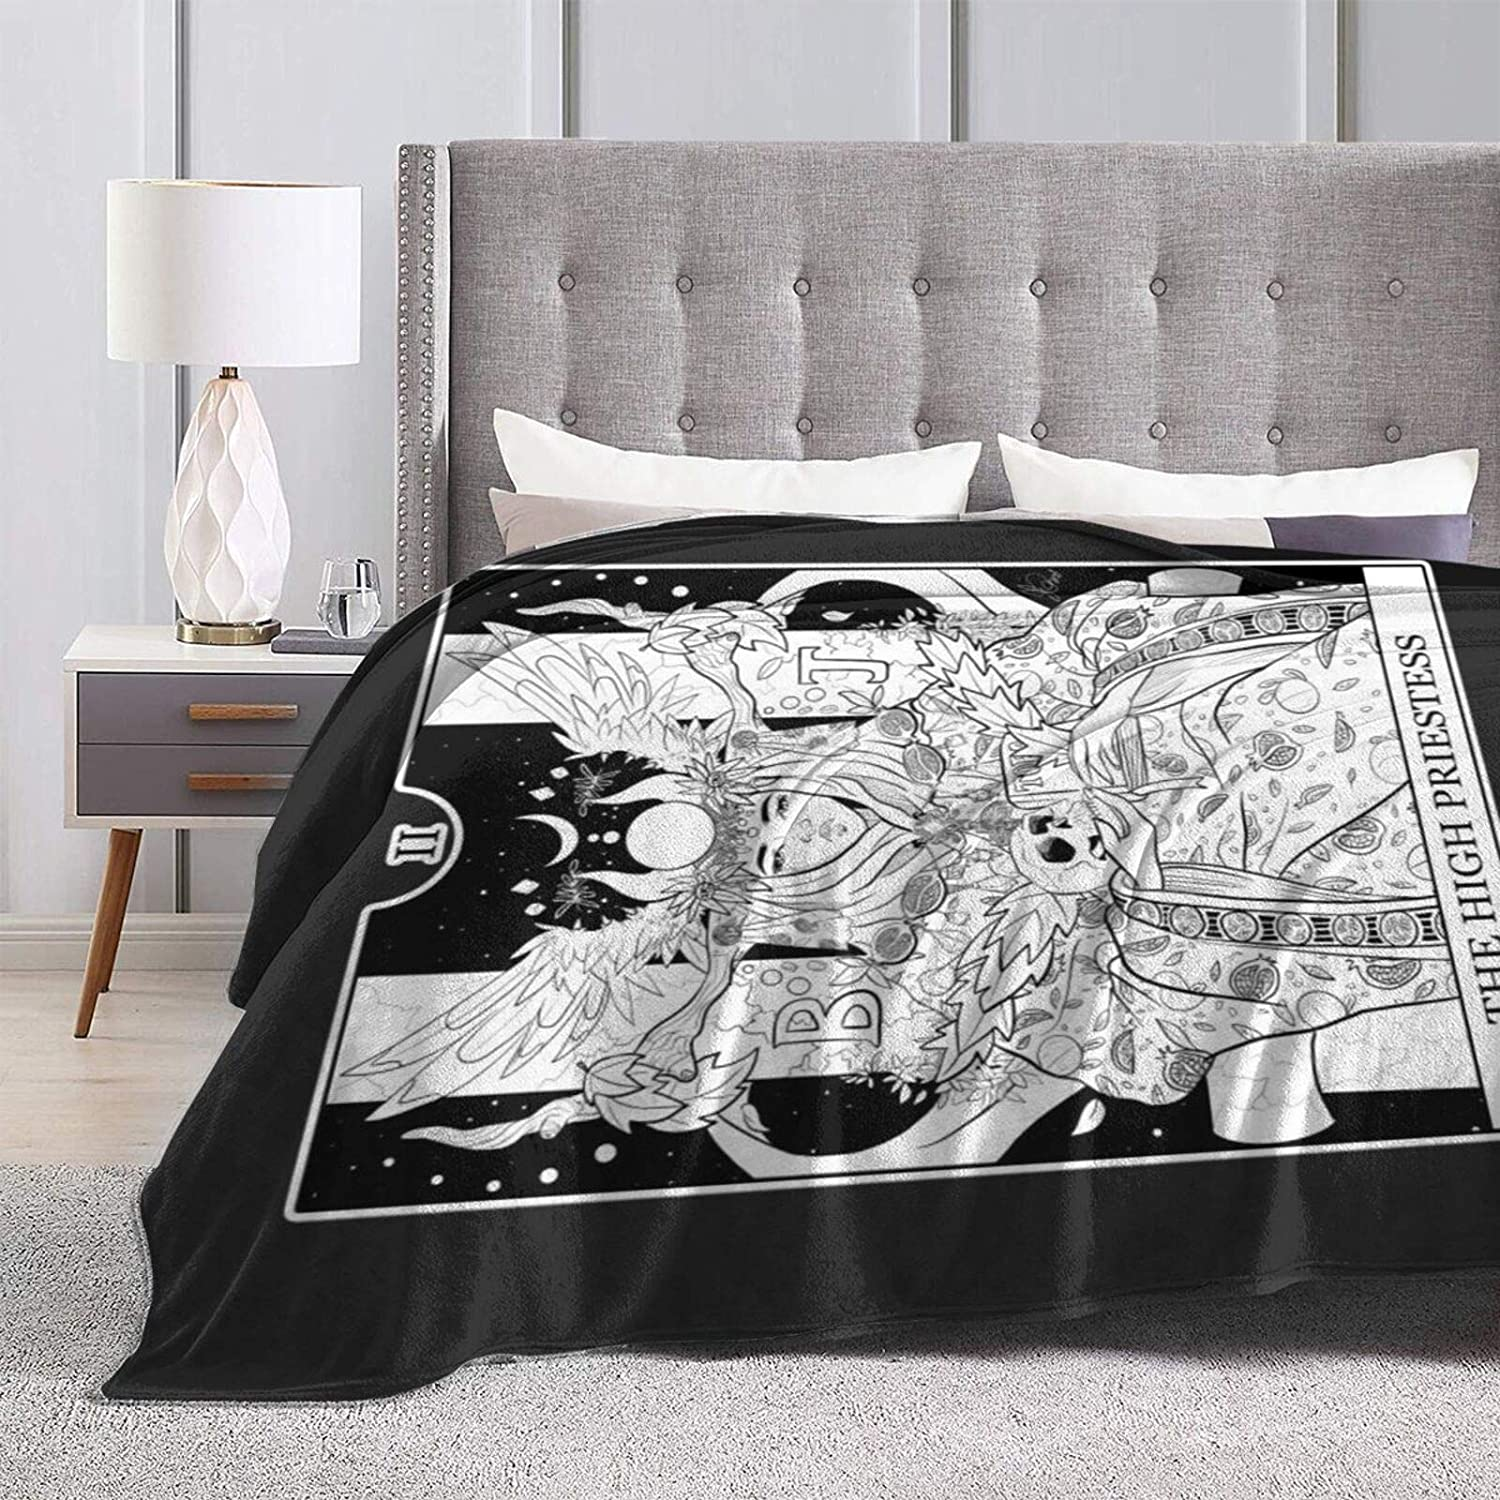 The High Priestess - Tarot Card Max 69% OFF Wear-Re Throwing Charlotte Mall Blanket